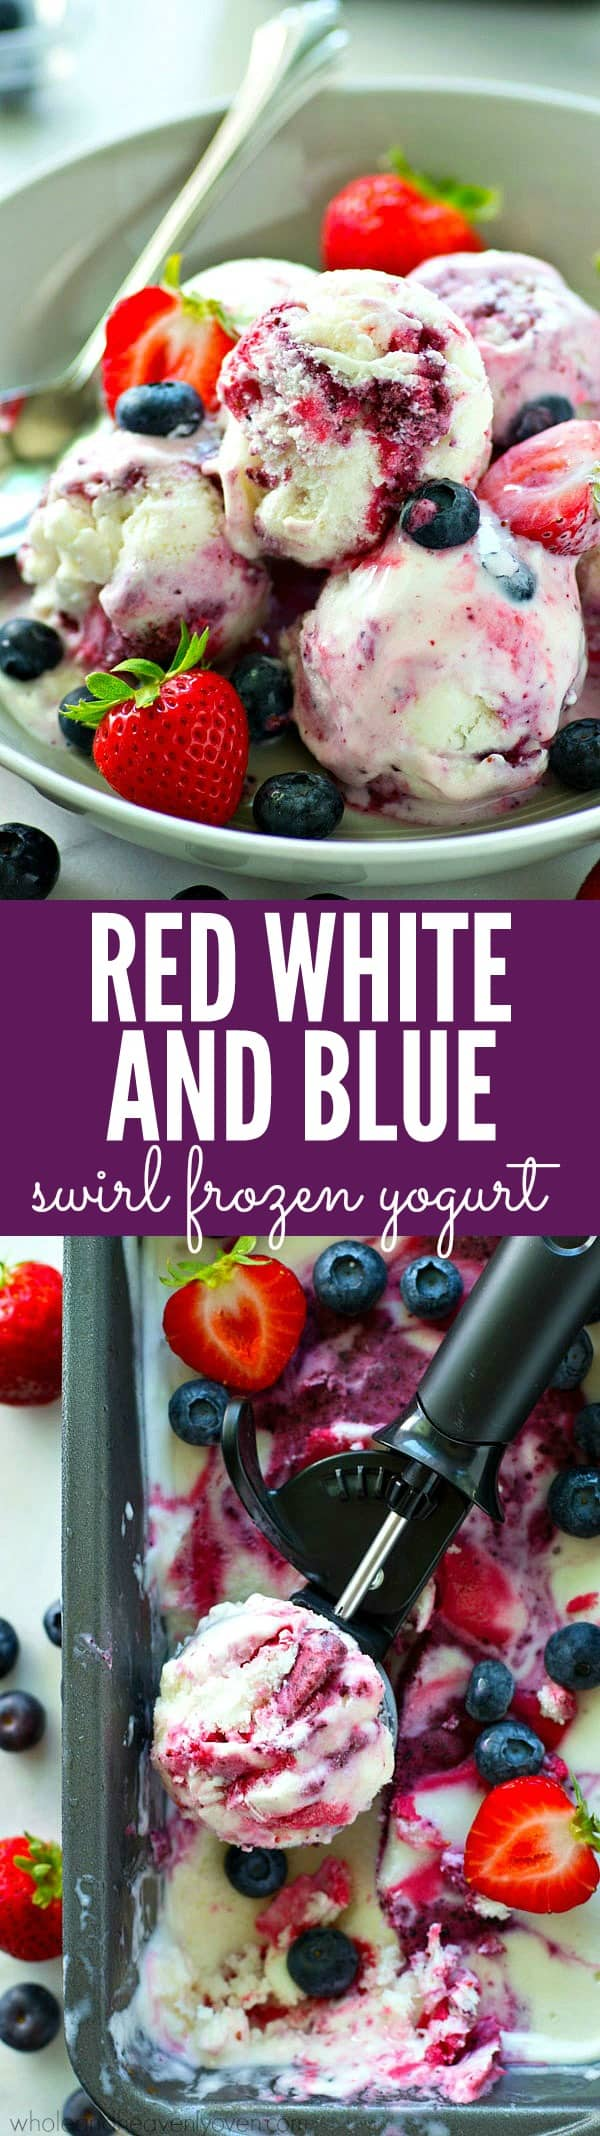 Swirled with blueberries and strawberries for a fun patriotic effect and made with only FIVE ingredients, this creamy frozen yogurt is a must-have for the 4th of July!